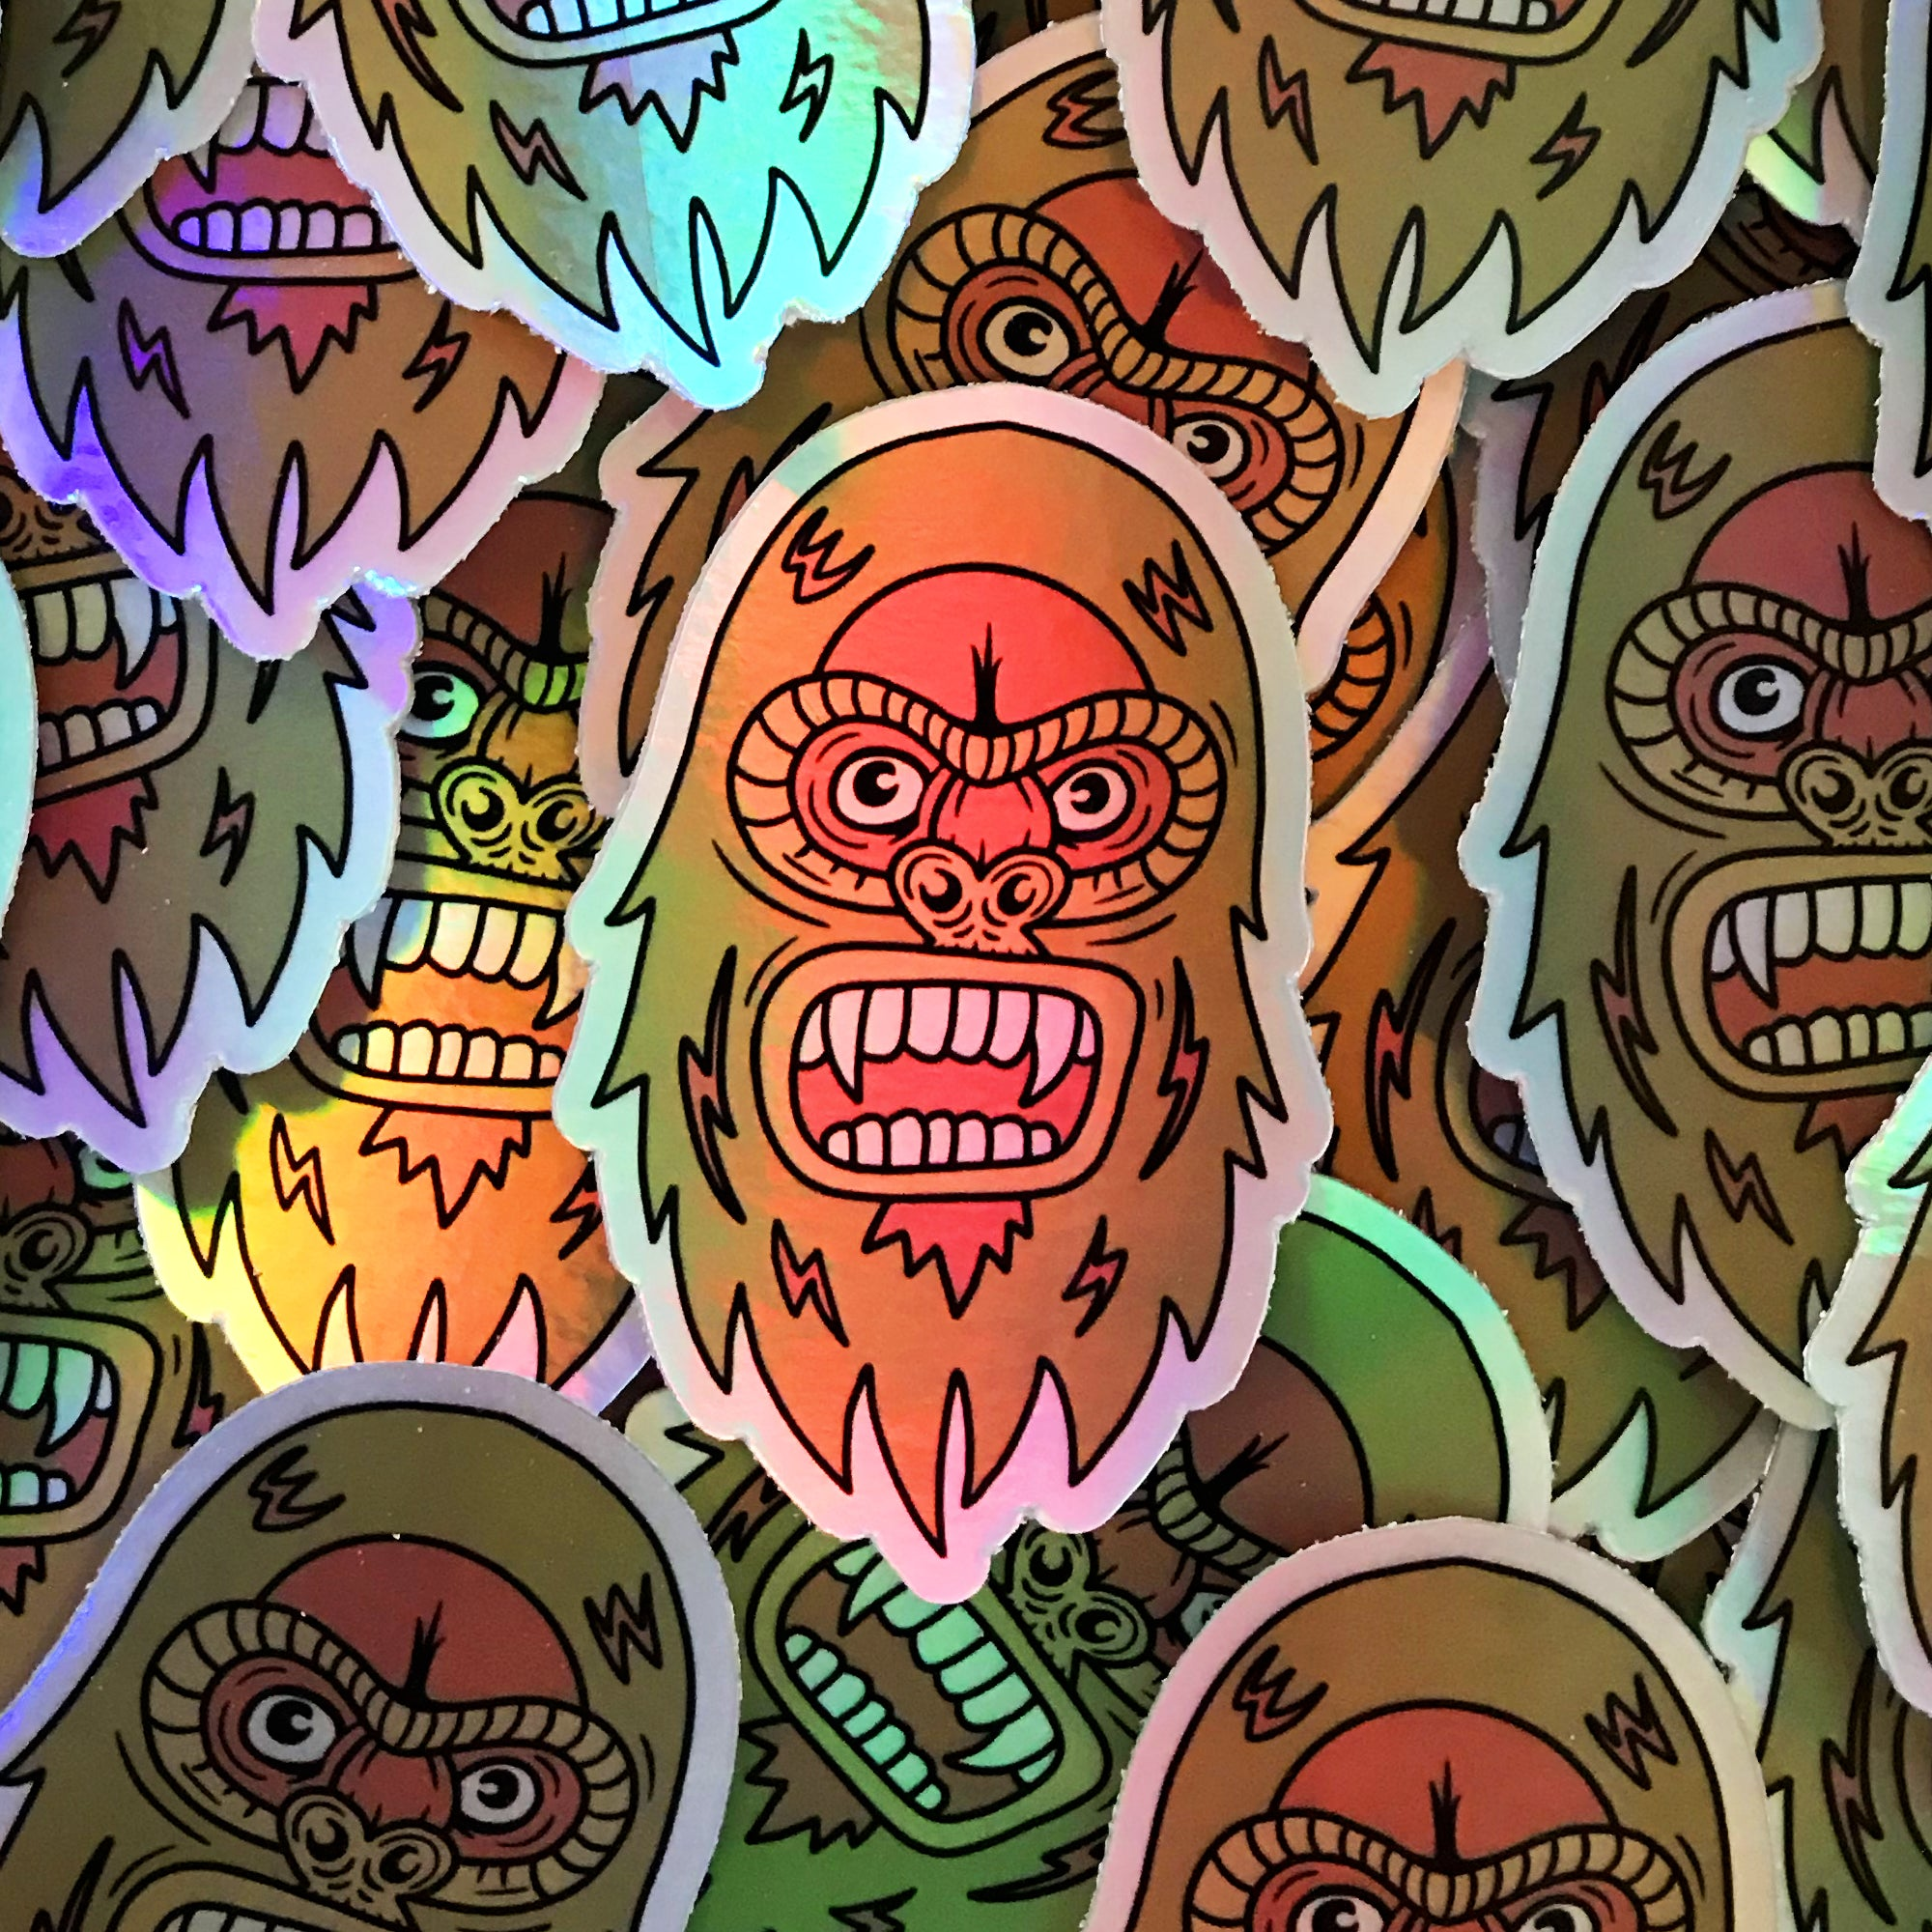 Holographic Sasquatch Sticker